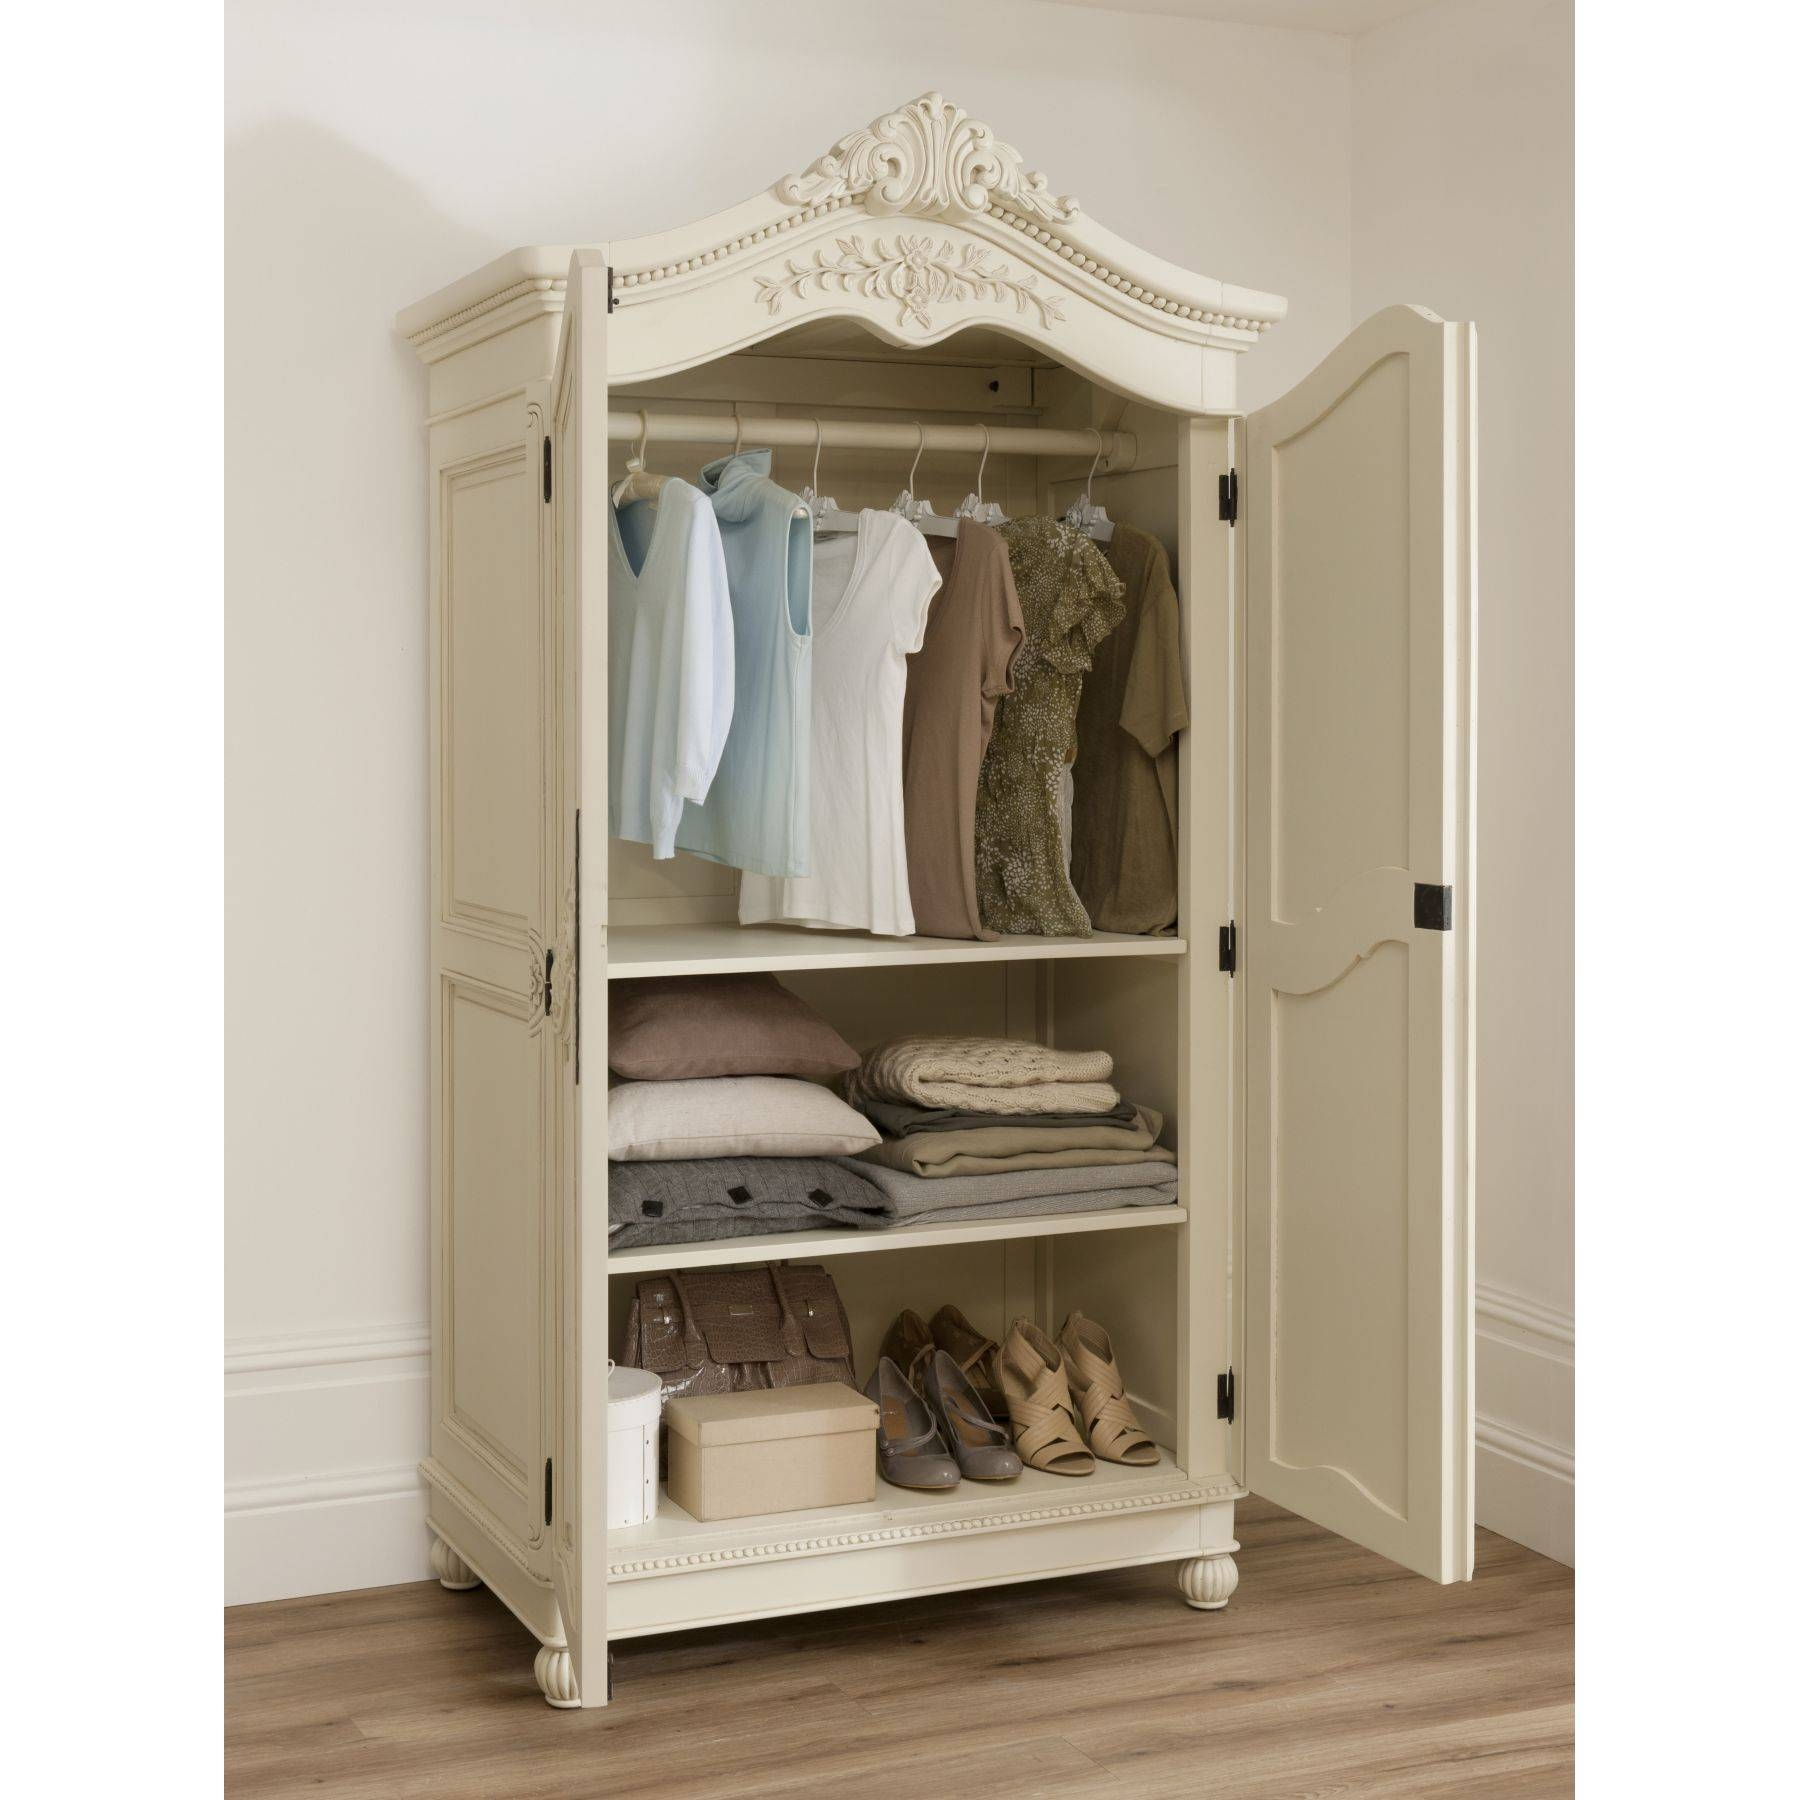 Shabby Chic Shelves For Sale Ireland: Smart Home 2015 Videos Hgtv Regarding Shabby Chic Wardrobes For Sale (View 13 of 15)